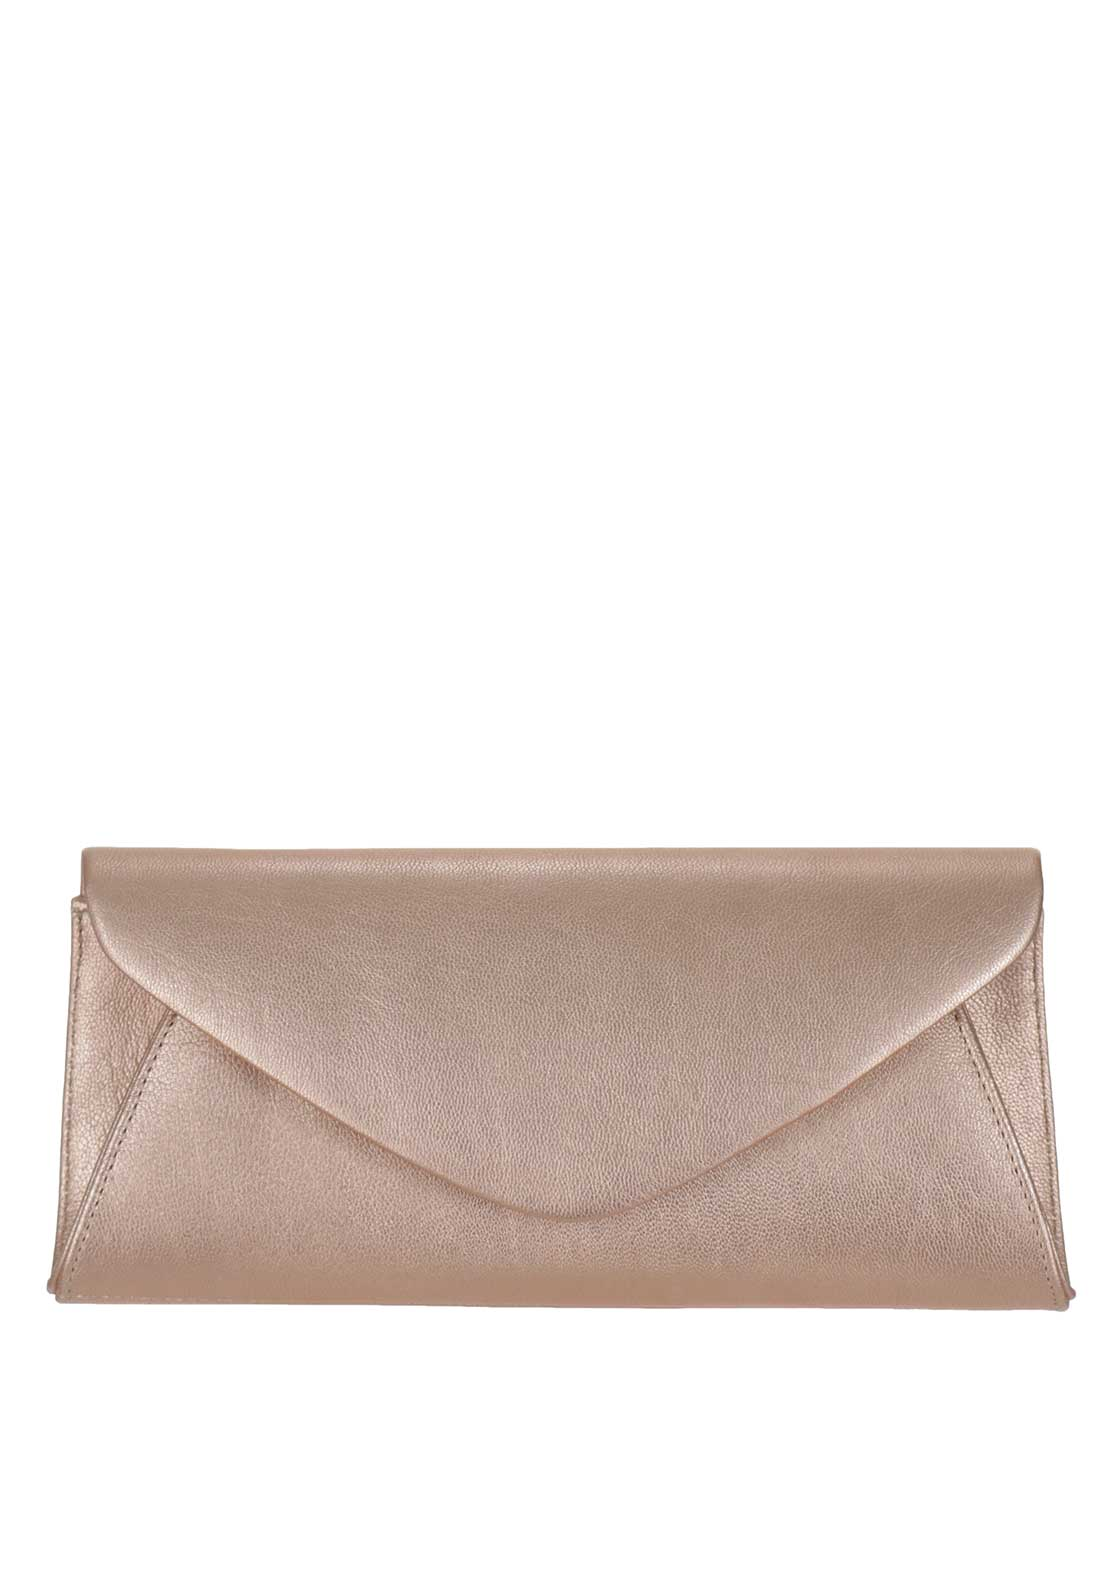 Marian Leather Envelope Clutch Bag, Pink